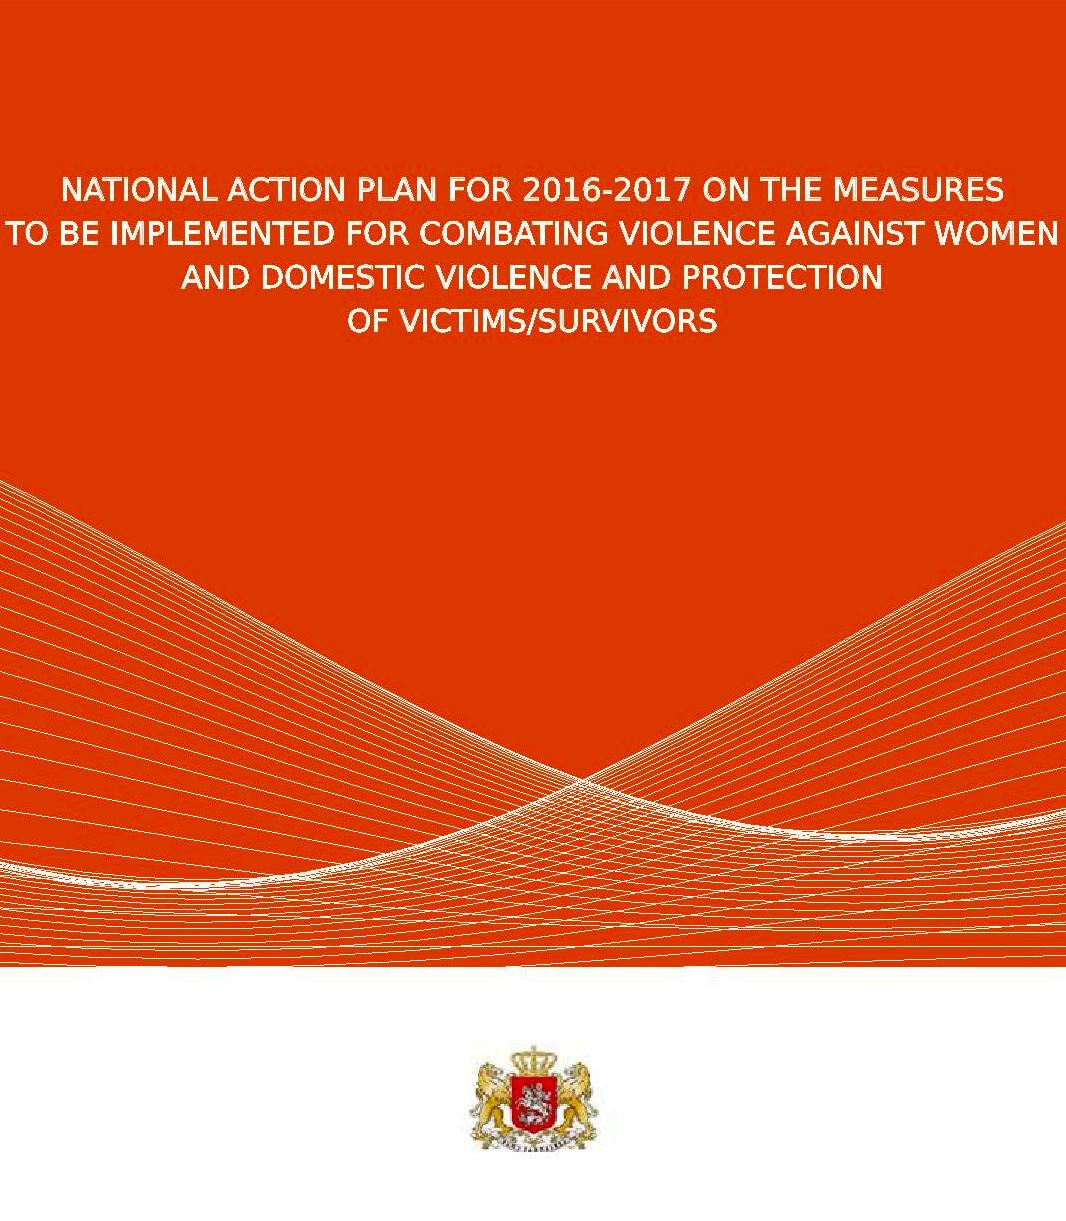 National Action Plan for 2016-2017 on the Measures to be Implemented for Combating Violence against Women and Domestic Violence and Protection of Victims/Survivors